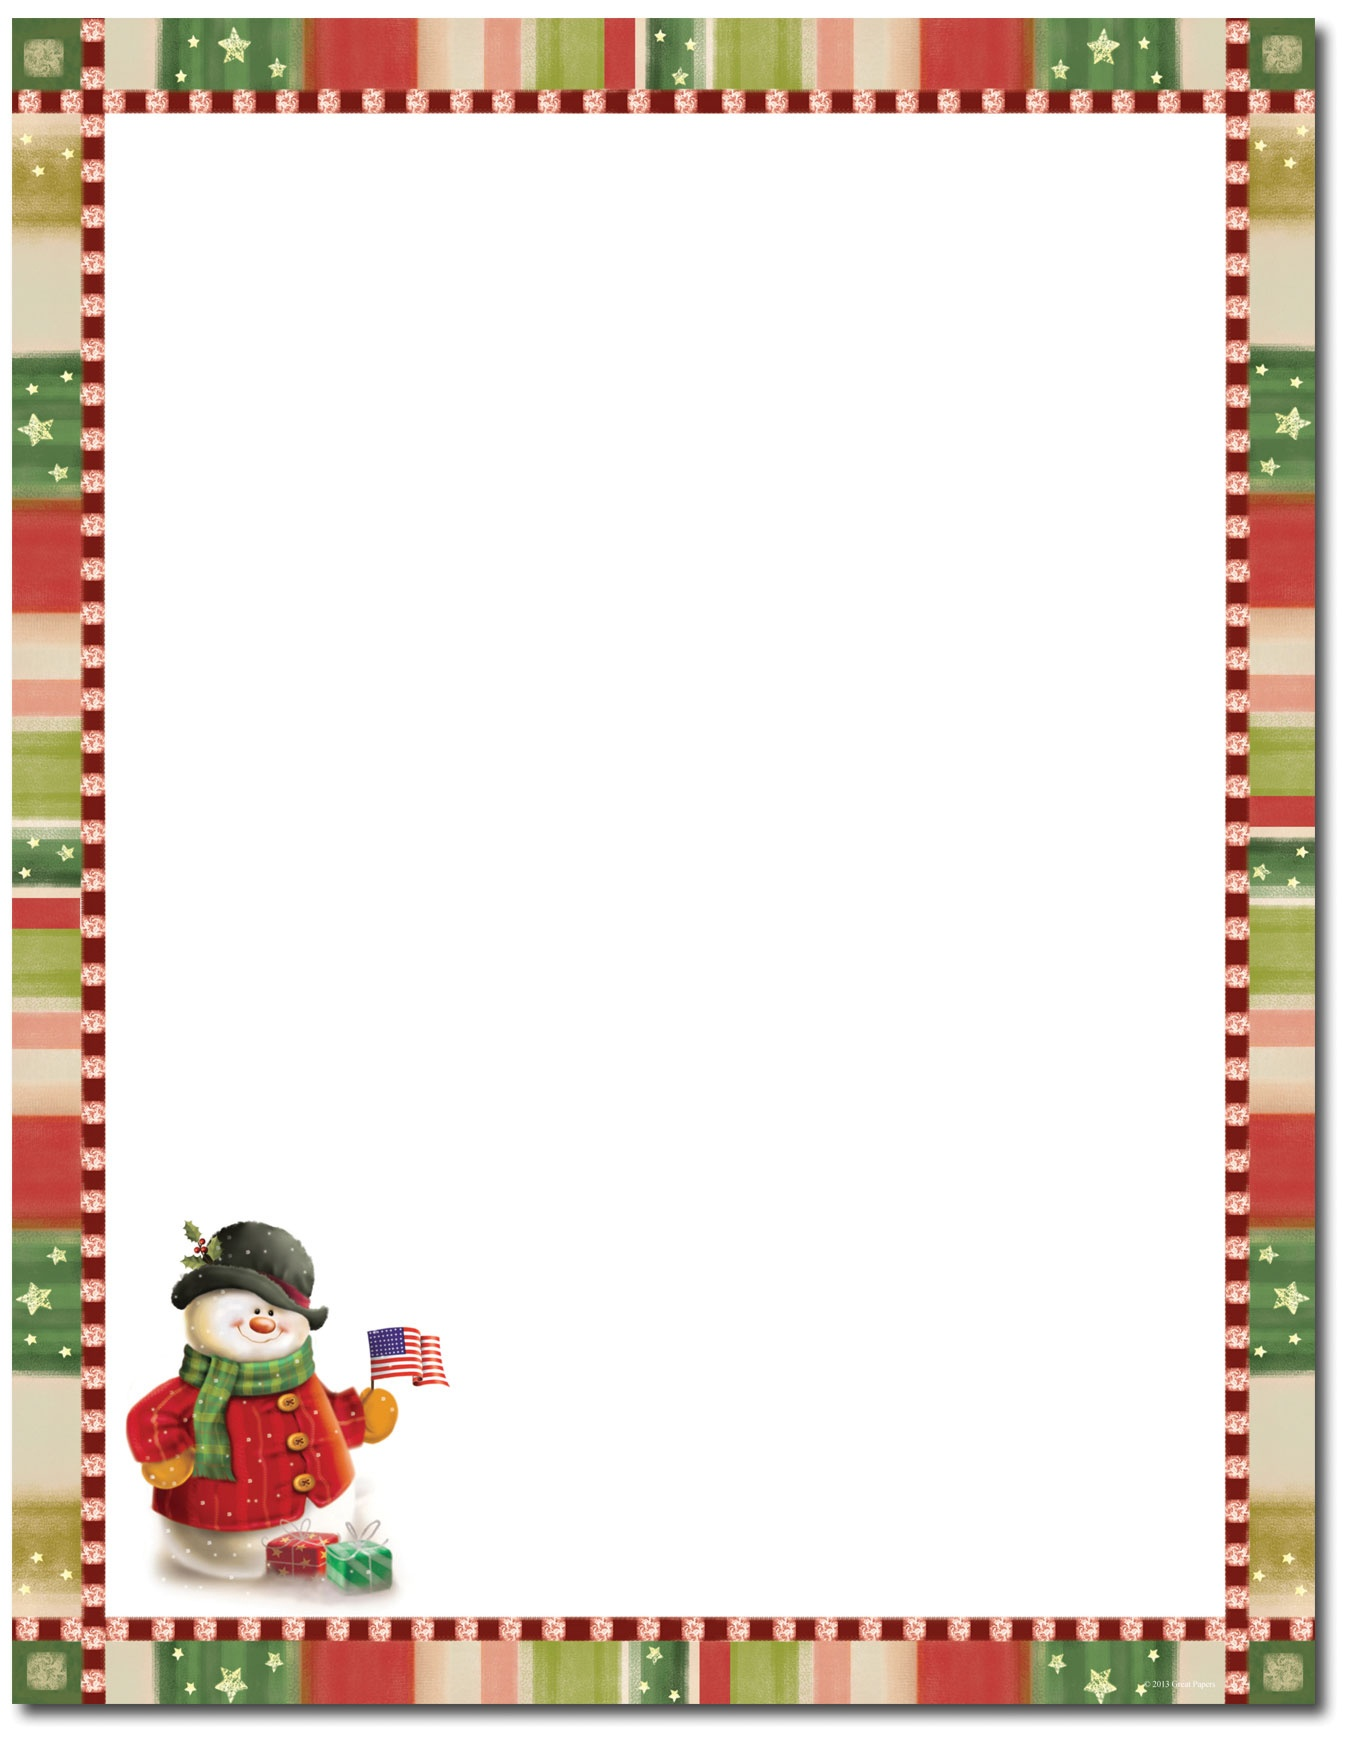 Free Christmas Stationary Cliparts, Download Free Clip Art, Free - Free Printable Christmas Stationery Paper